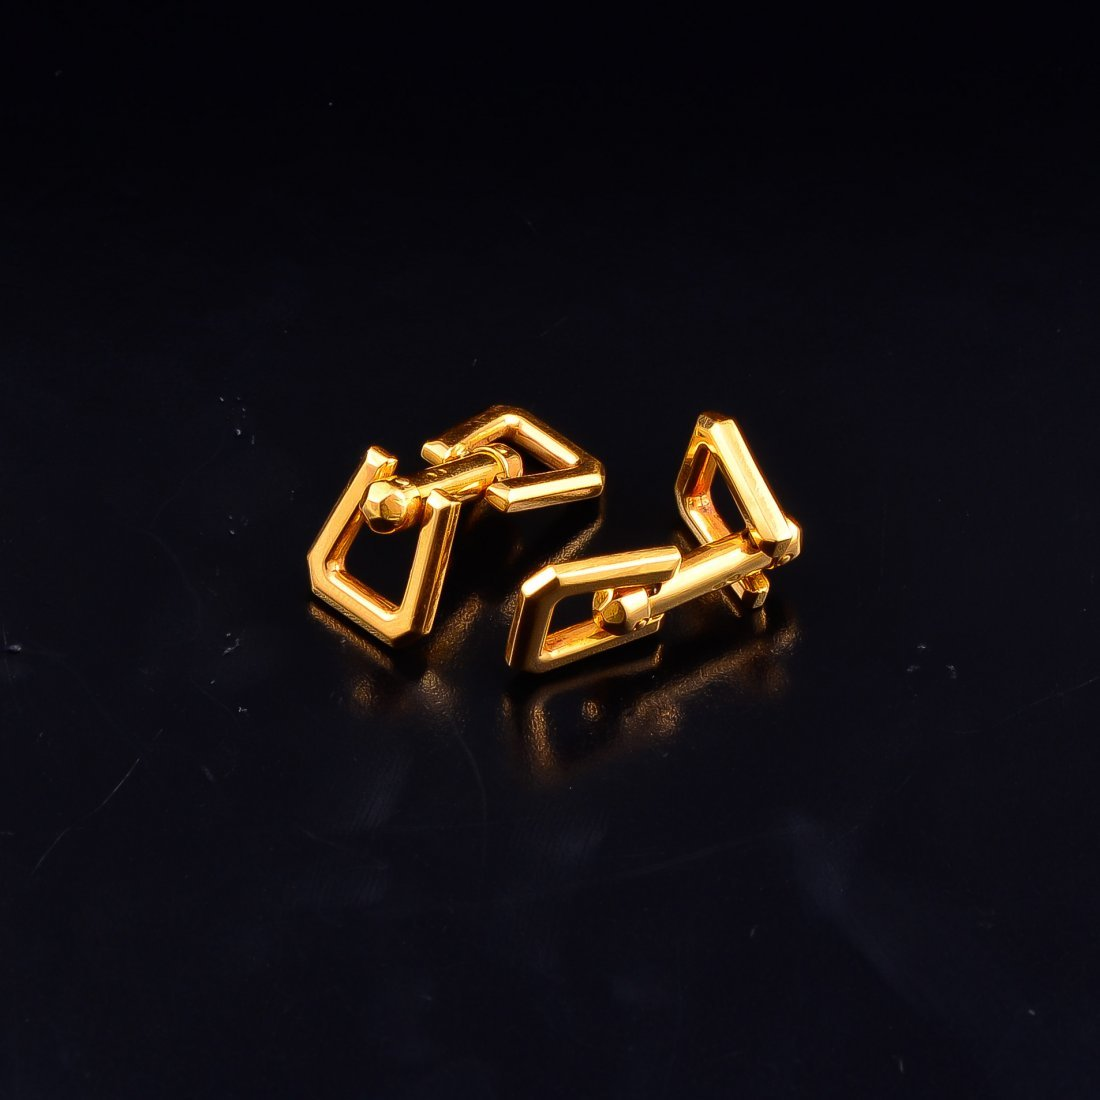 French gold cufflinks by Mecan - 2